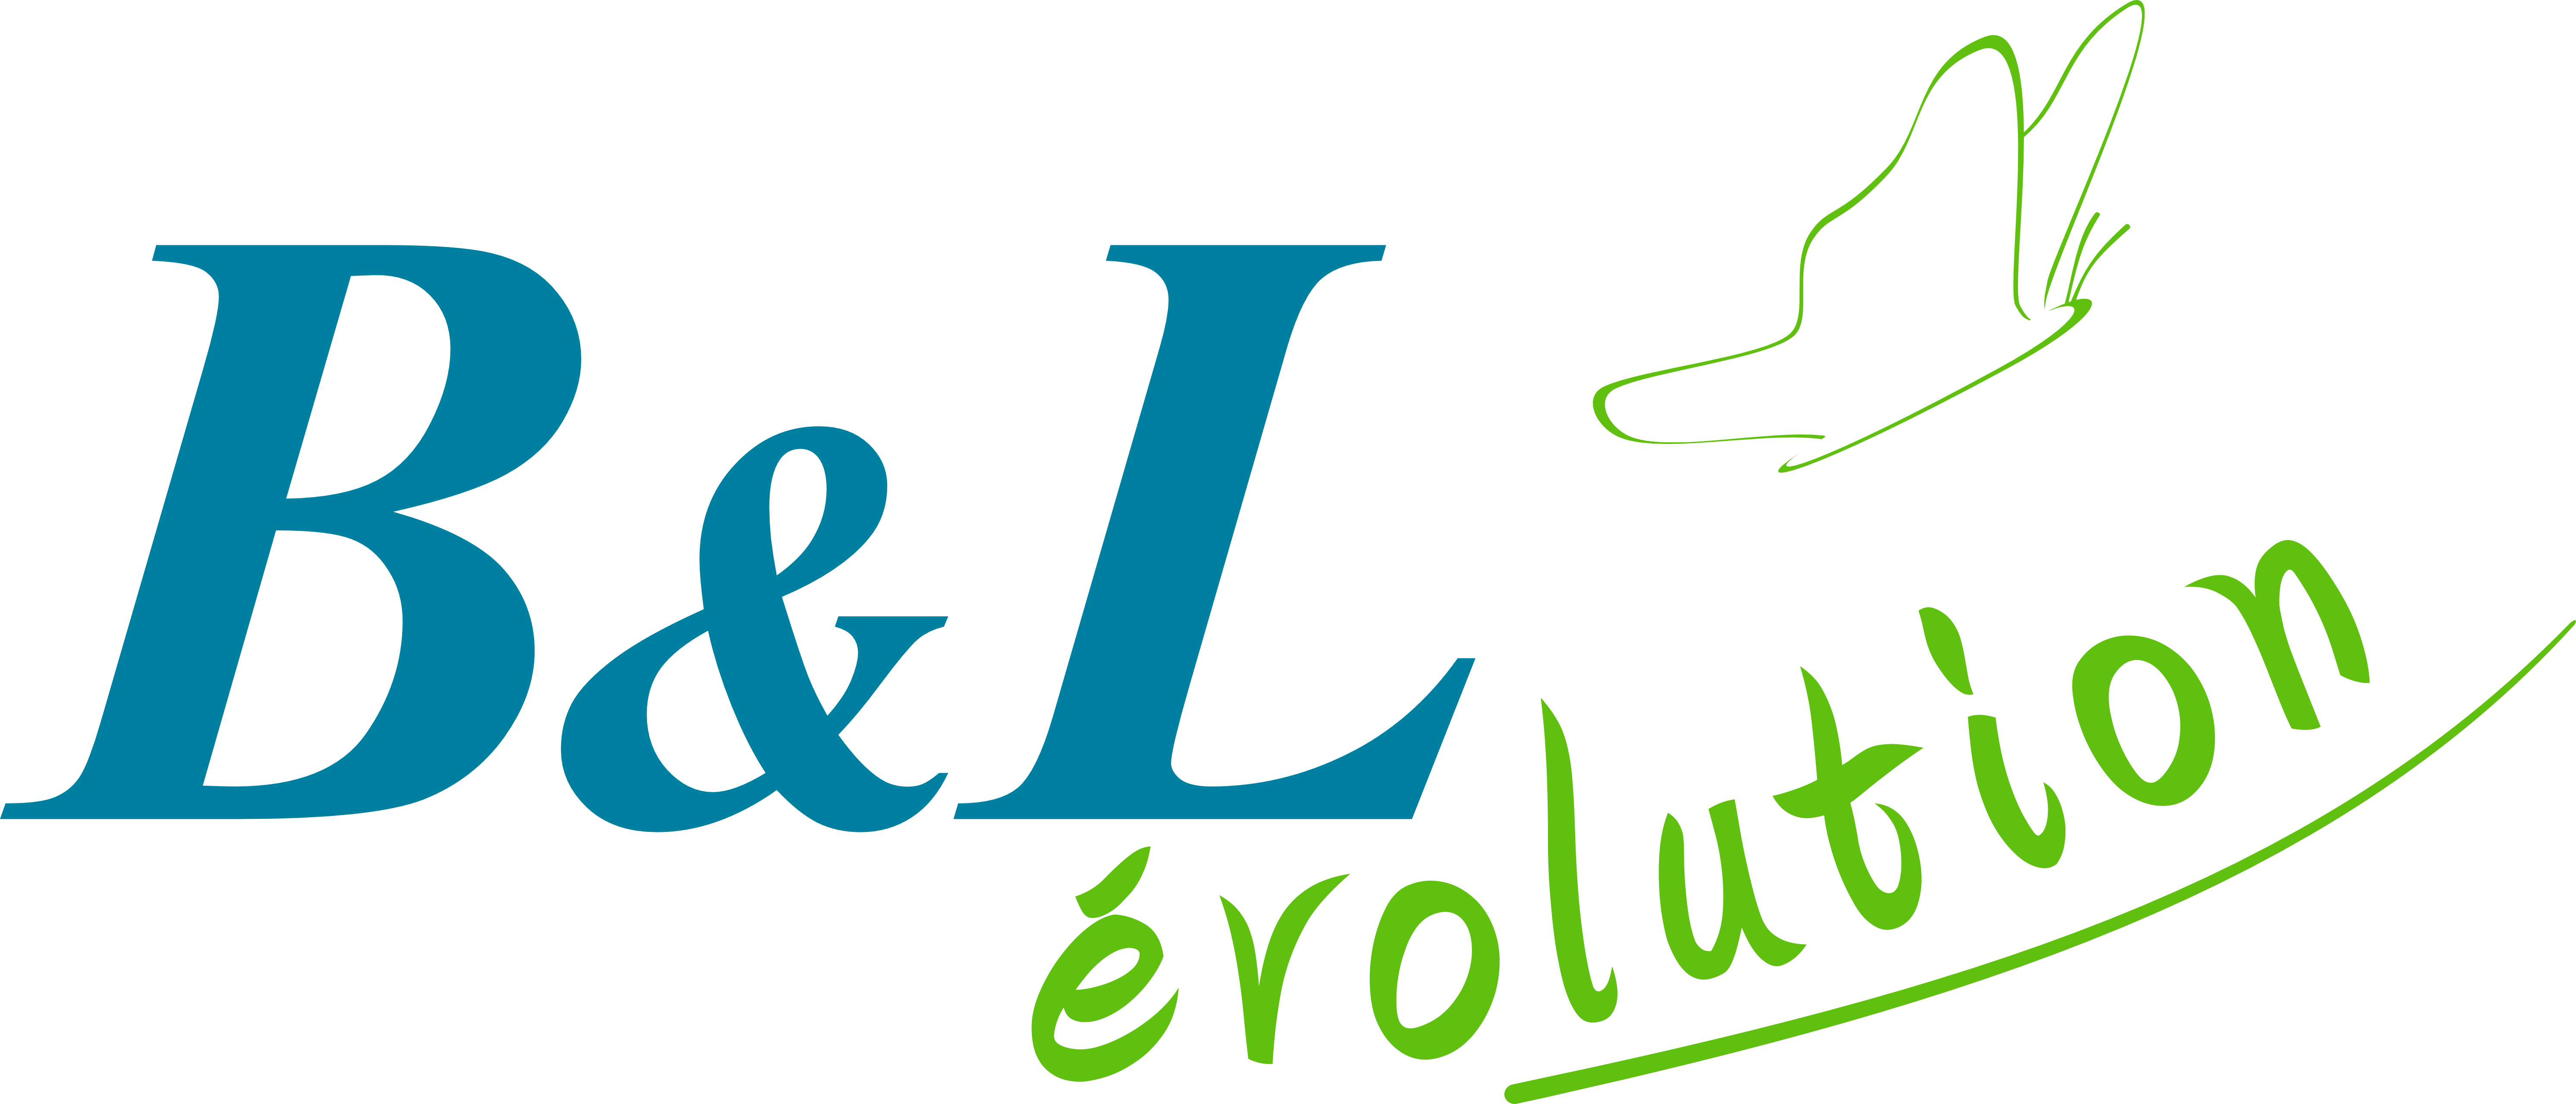 Bl evolution logo hd